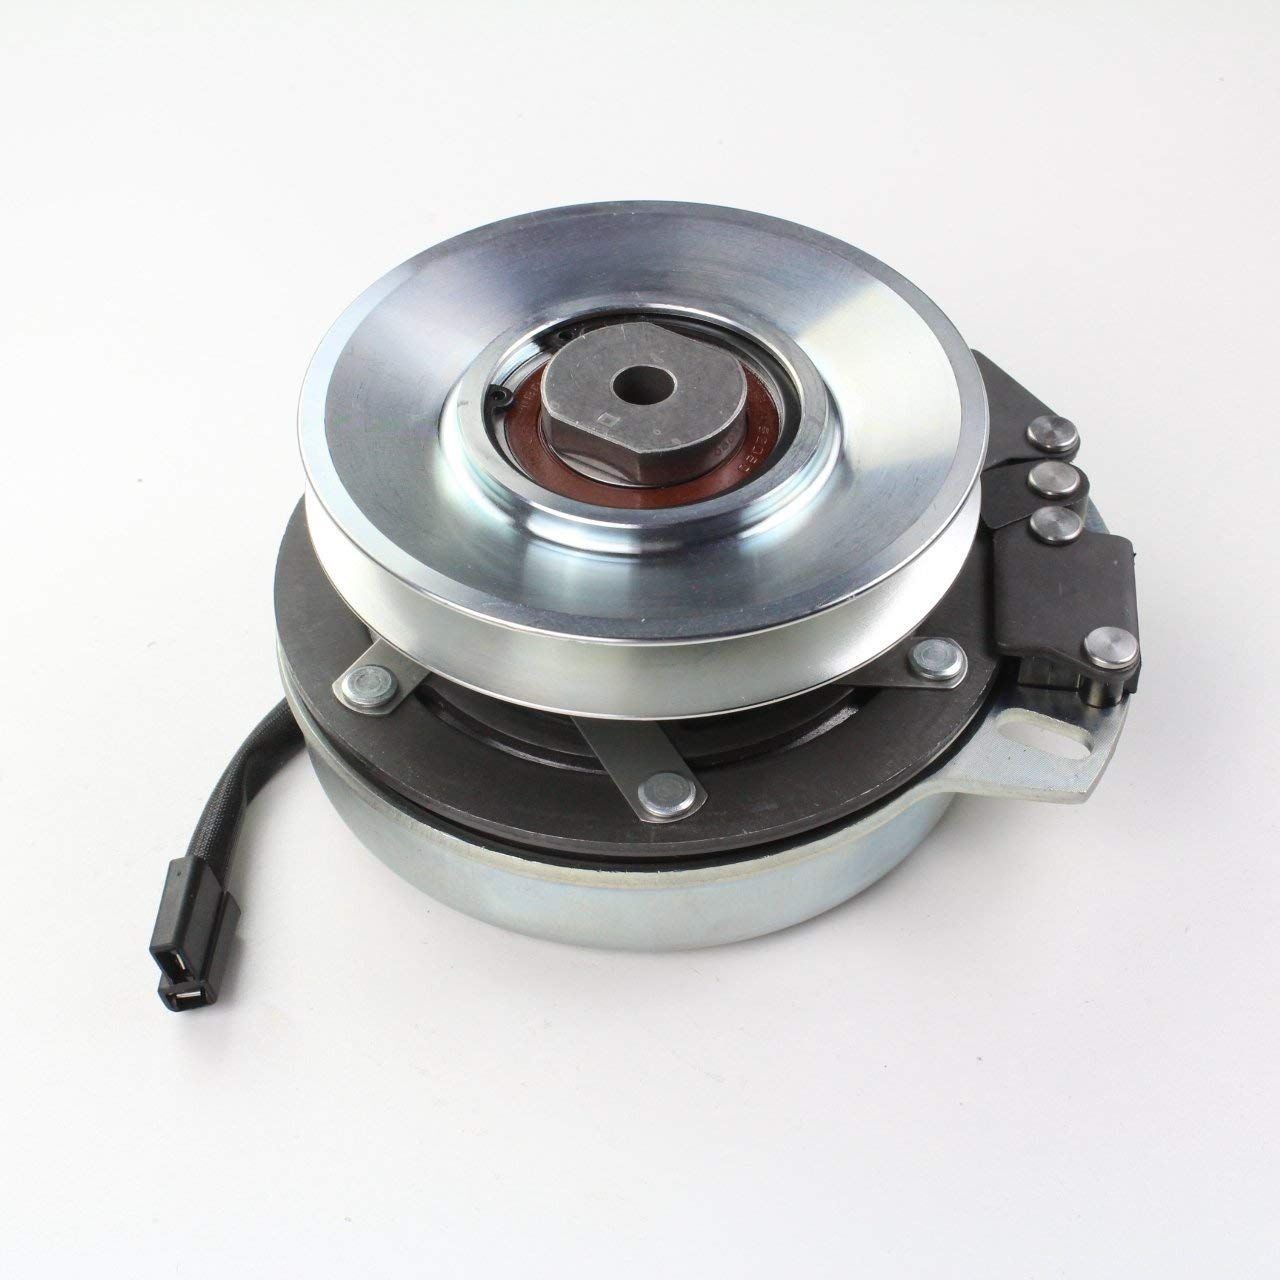 Cheap Lx 277, find Lx 277 deals on line at Alibaba com